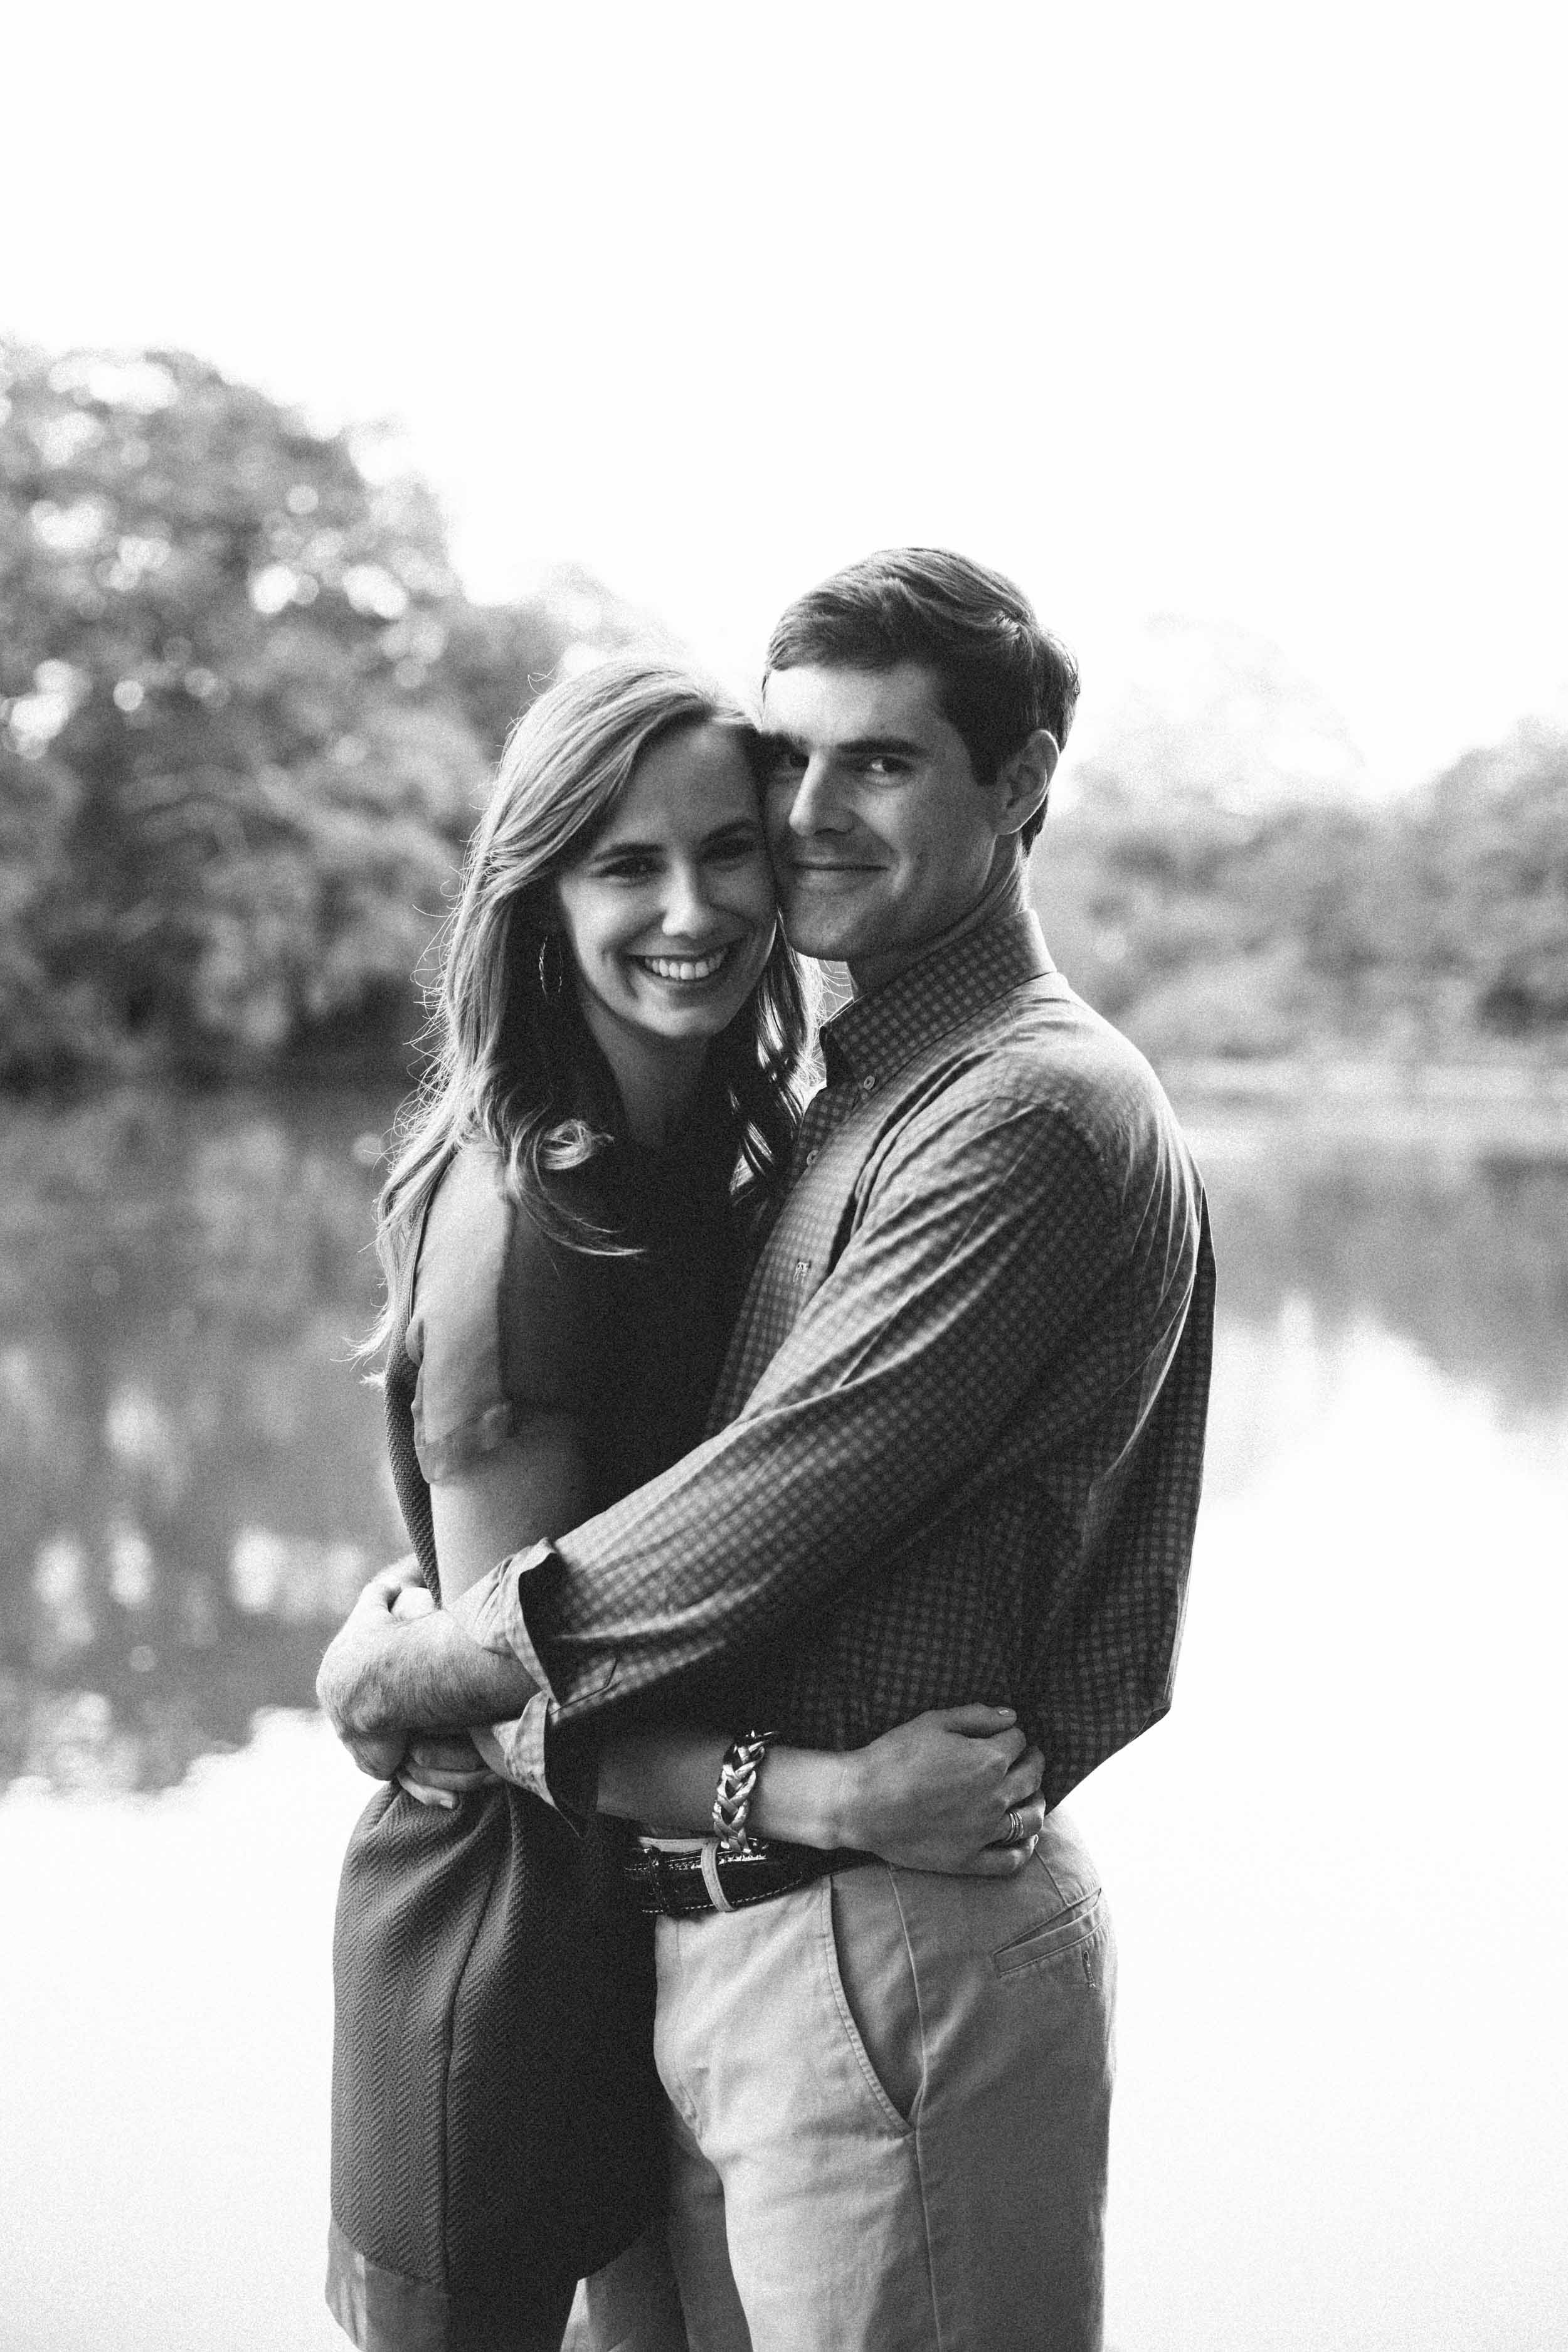 jimmy-rowalt-atlanta-engagement-photography-009.jpg